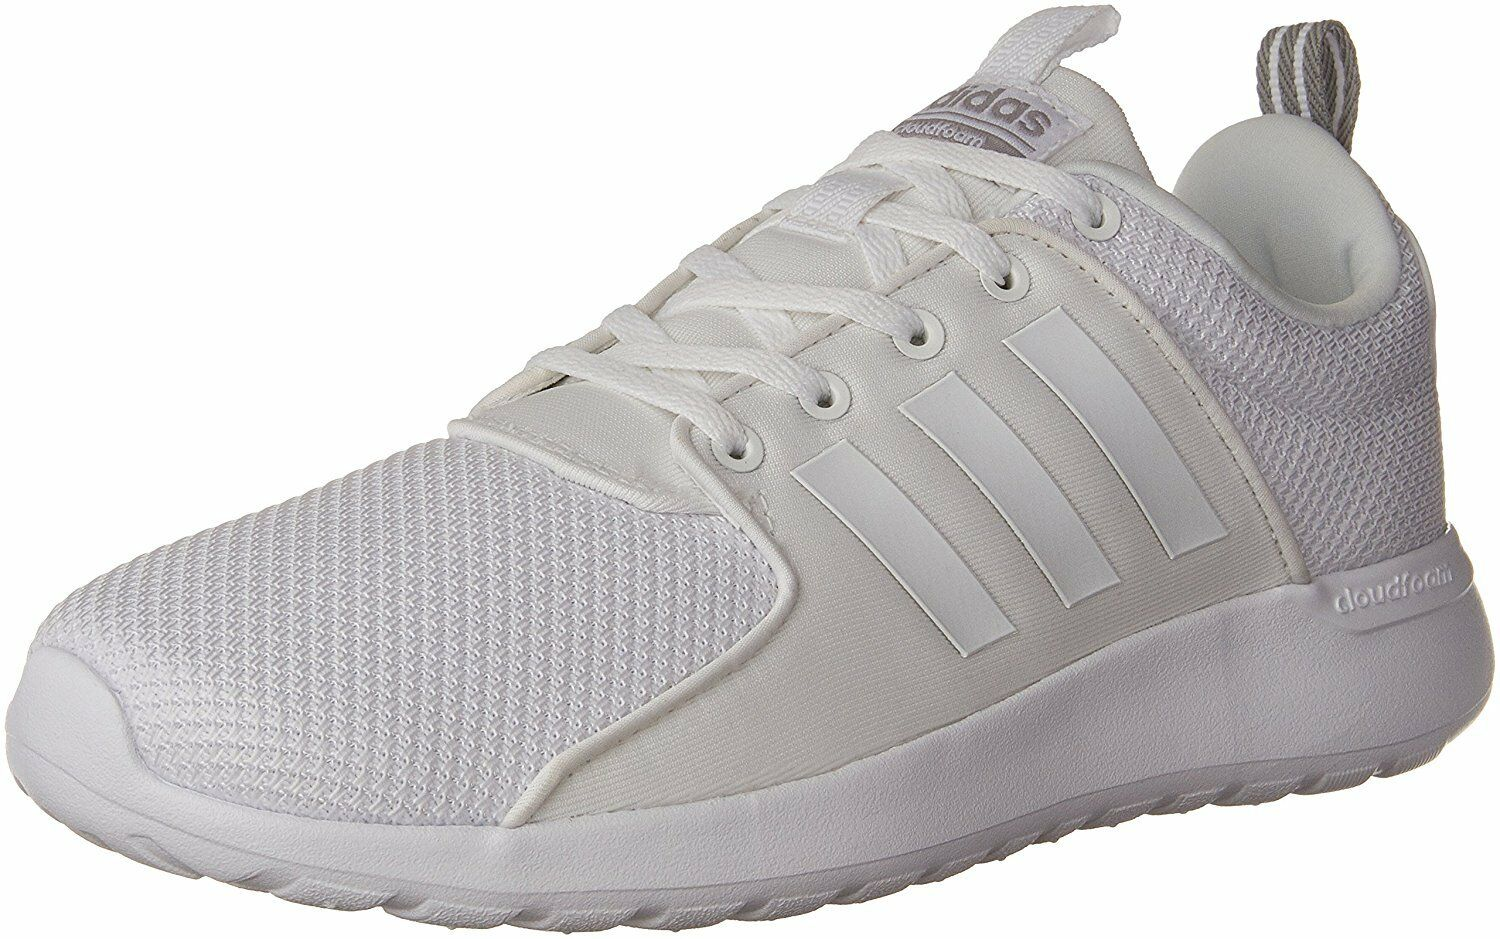 Buy Adidas Neo Men s Cloudfoam Lite Racer Running Shoes 5 Colors ... b60d3e6e1